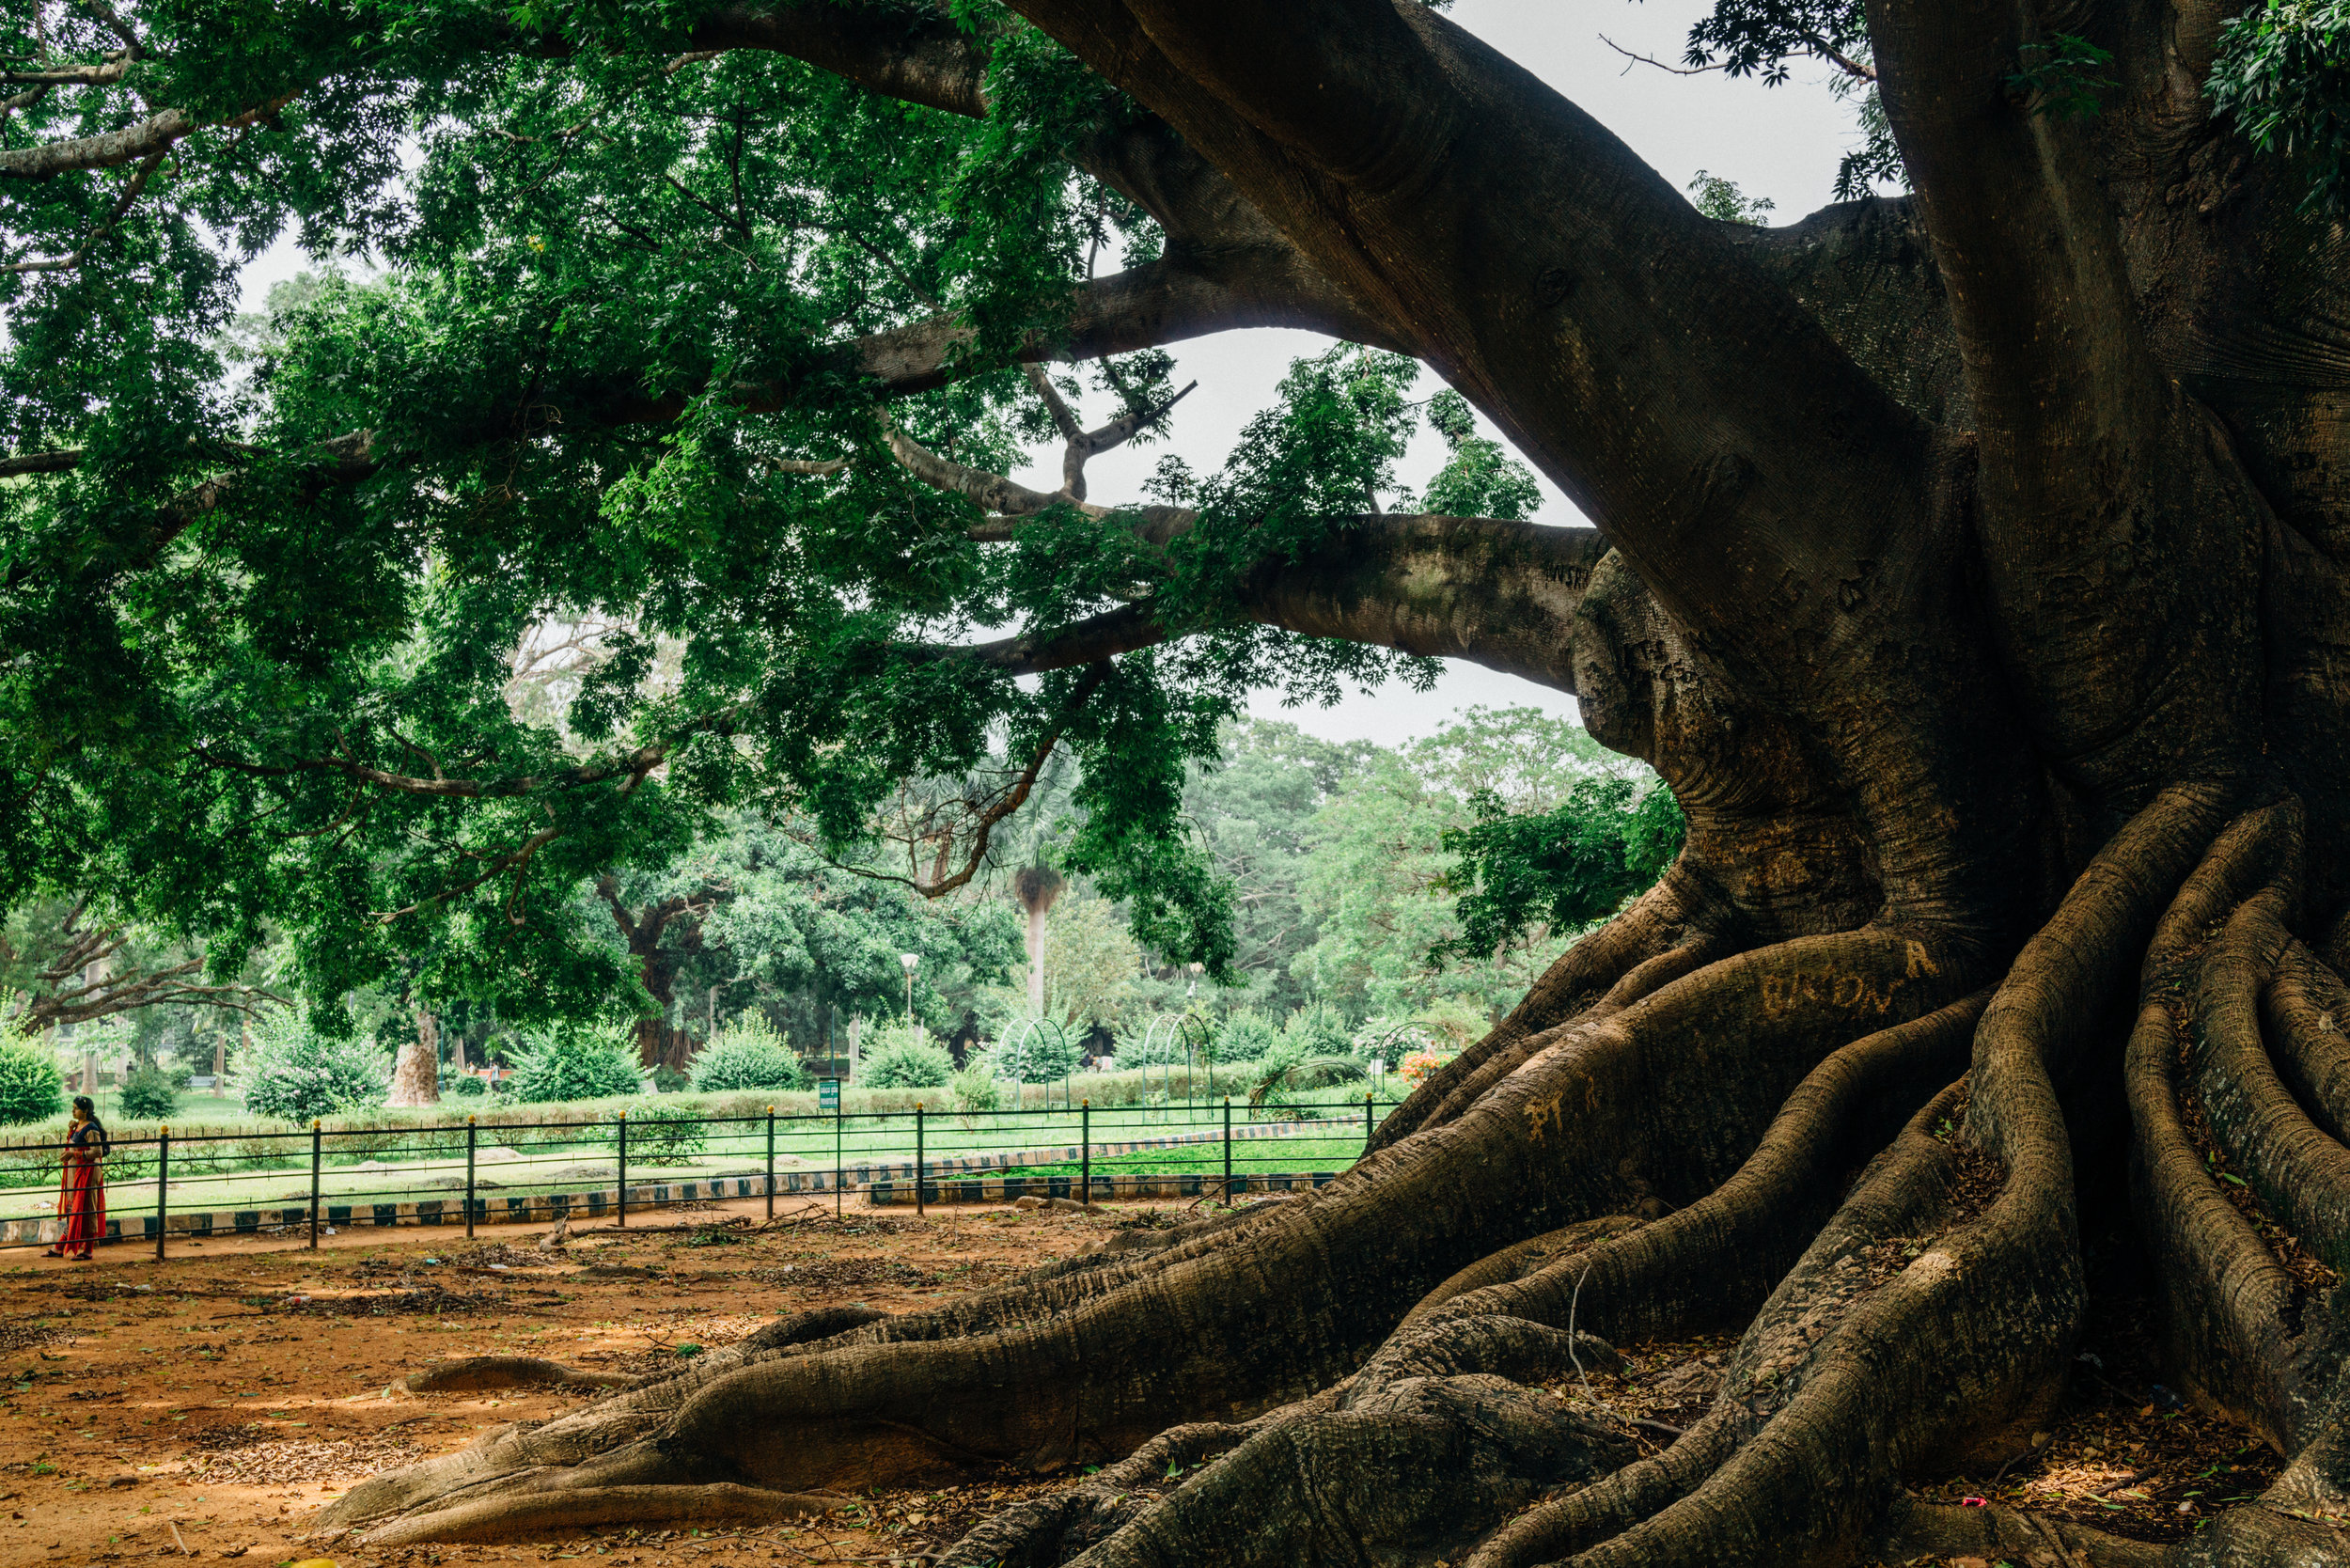 A  Ceiba pentandra , or White Silk-Cotton Tree, over 200 years old, at Lalbagh in Bangalore